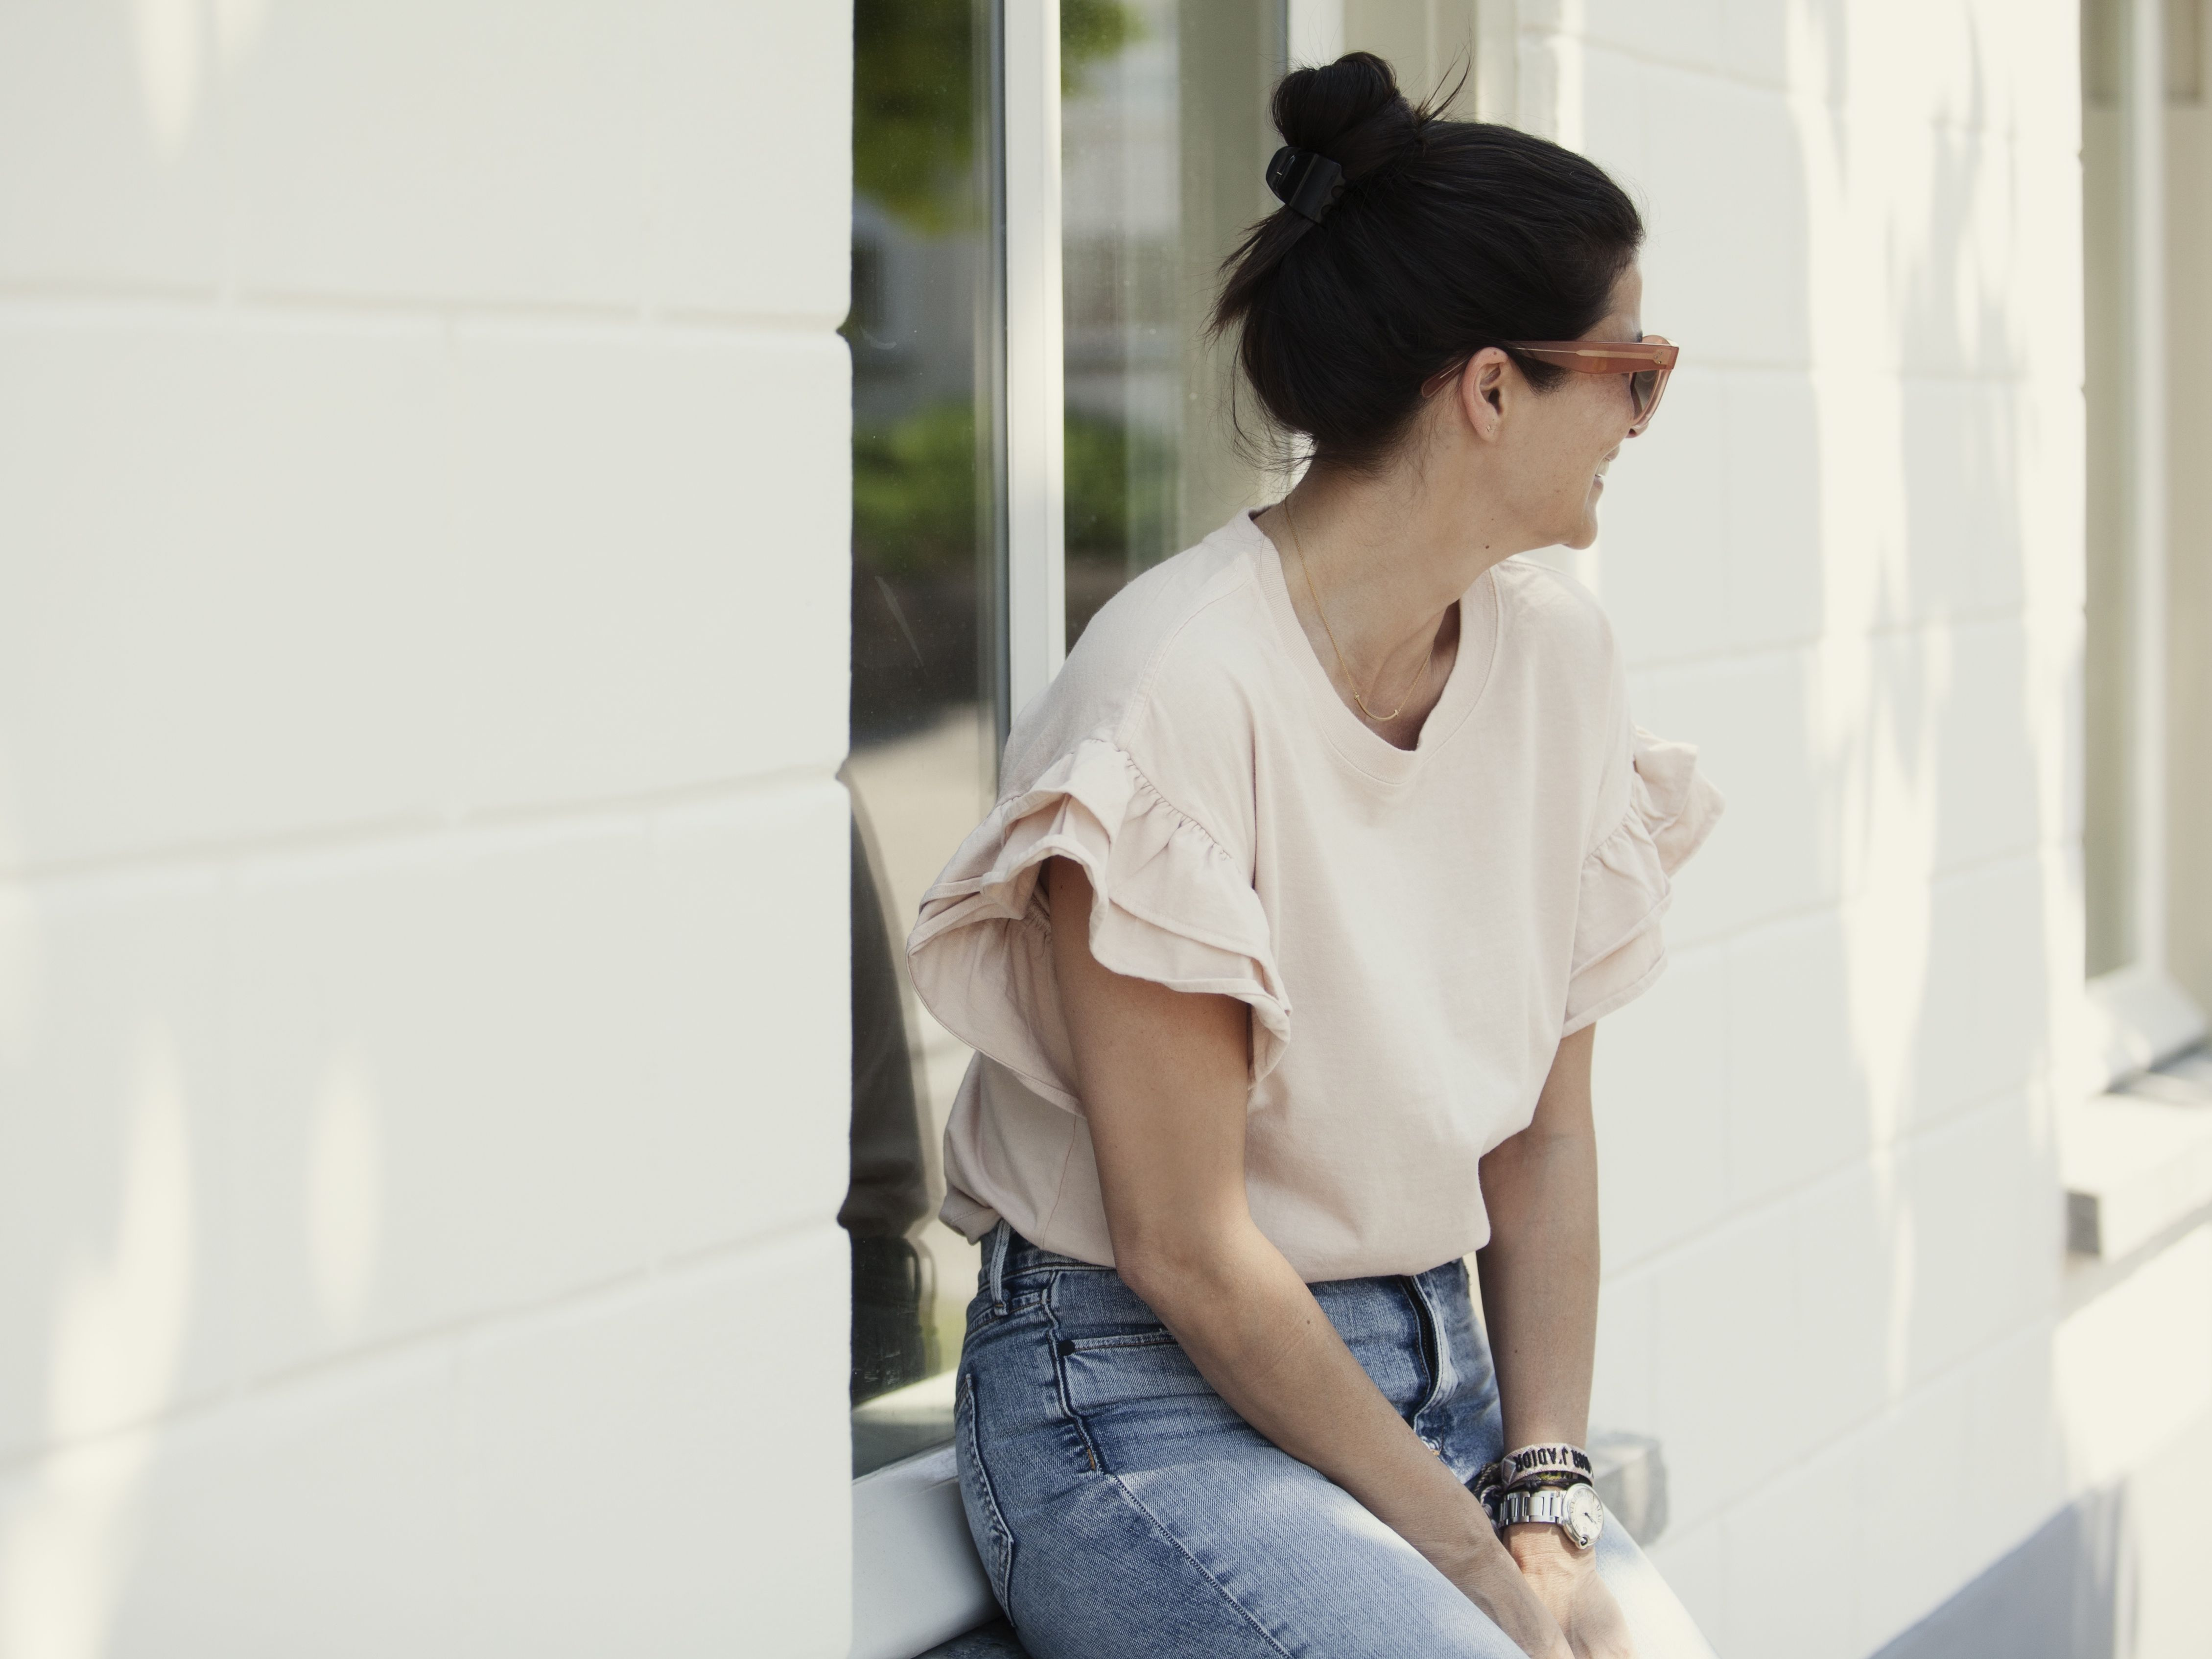 Styling Stories Sabrina wearing Current Elliott T-Shirt ruffles, Rag&Bone high waist cigarette jeans, Hermes Sandals tan